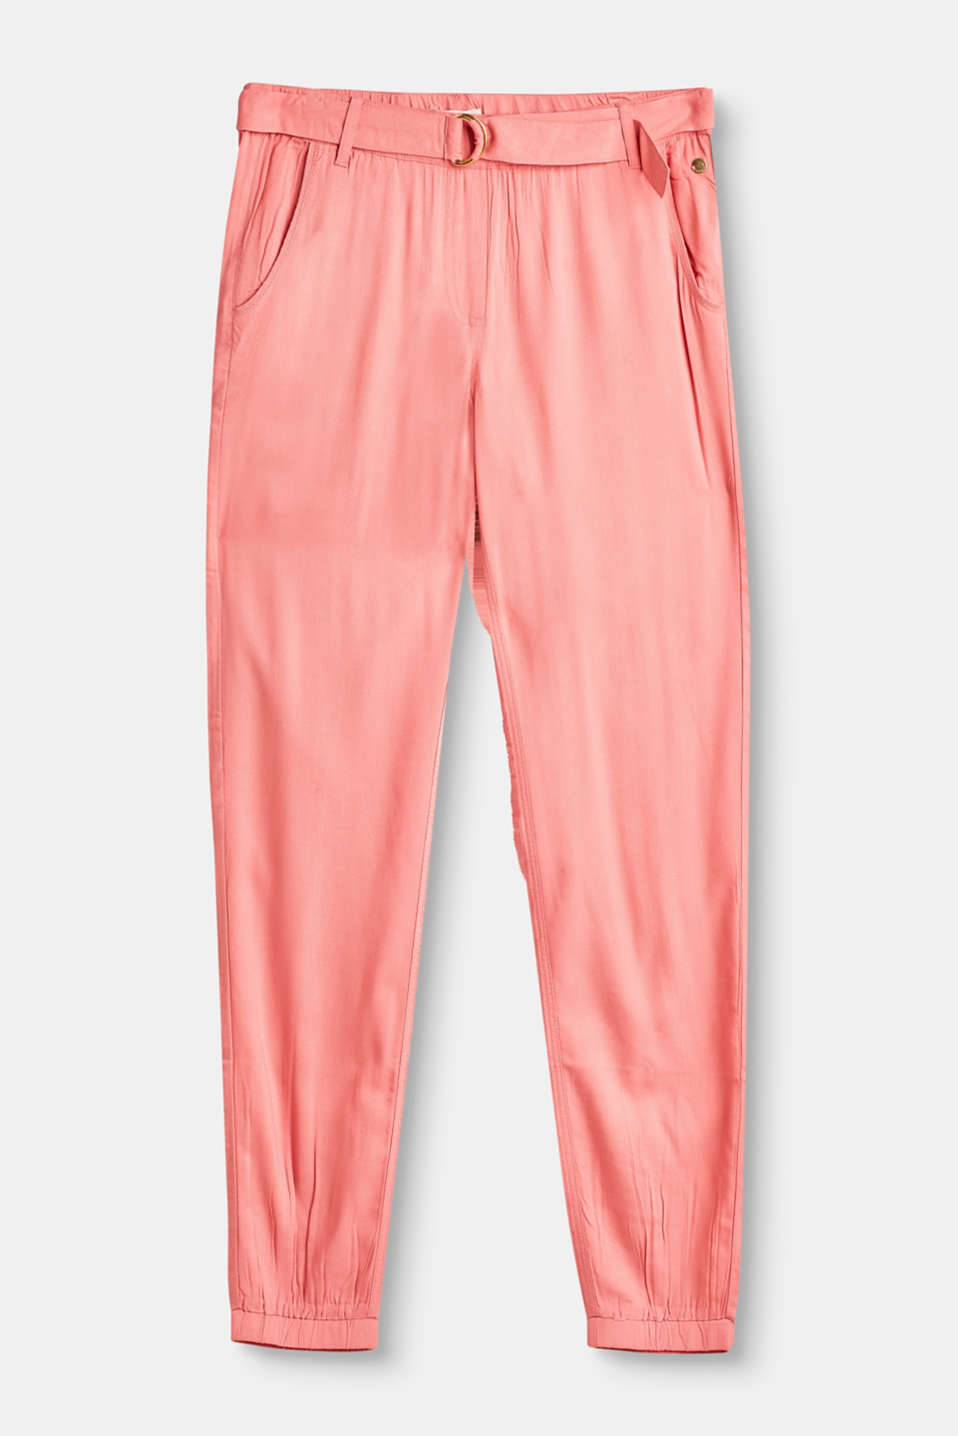 Esprit - Flowing summer trousers with an elasticated waistband and cuffs